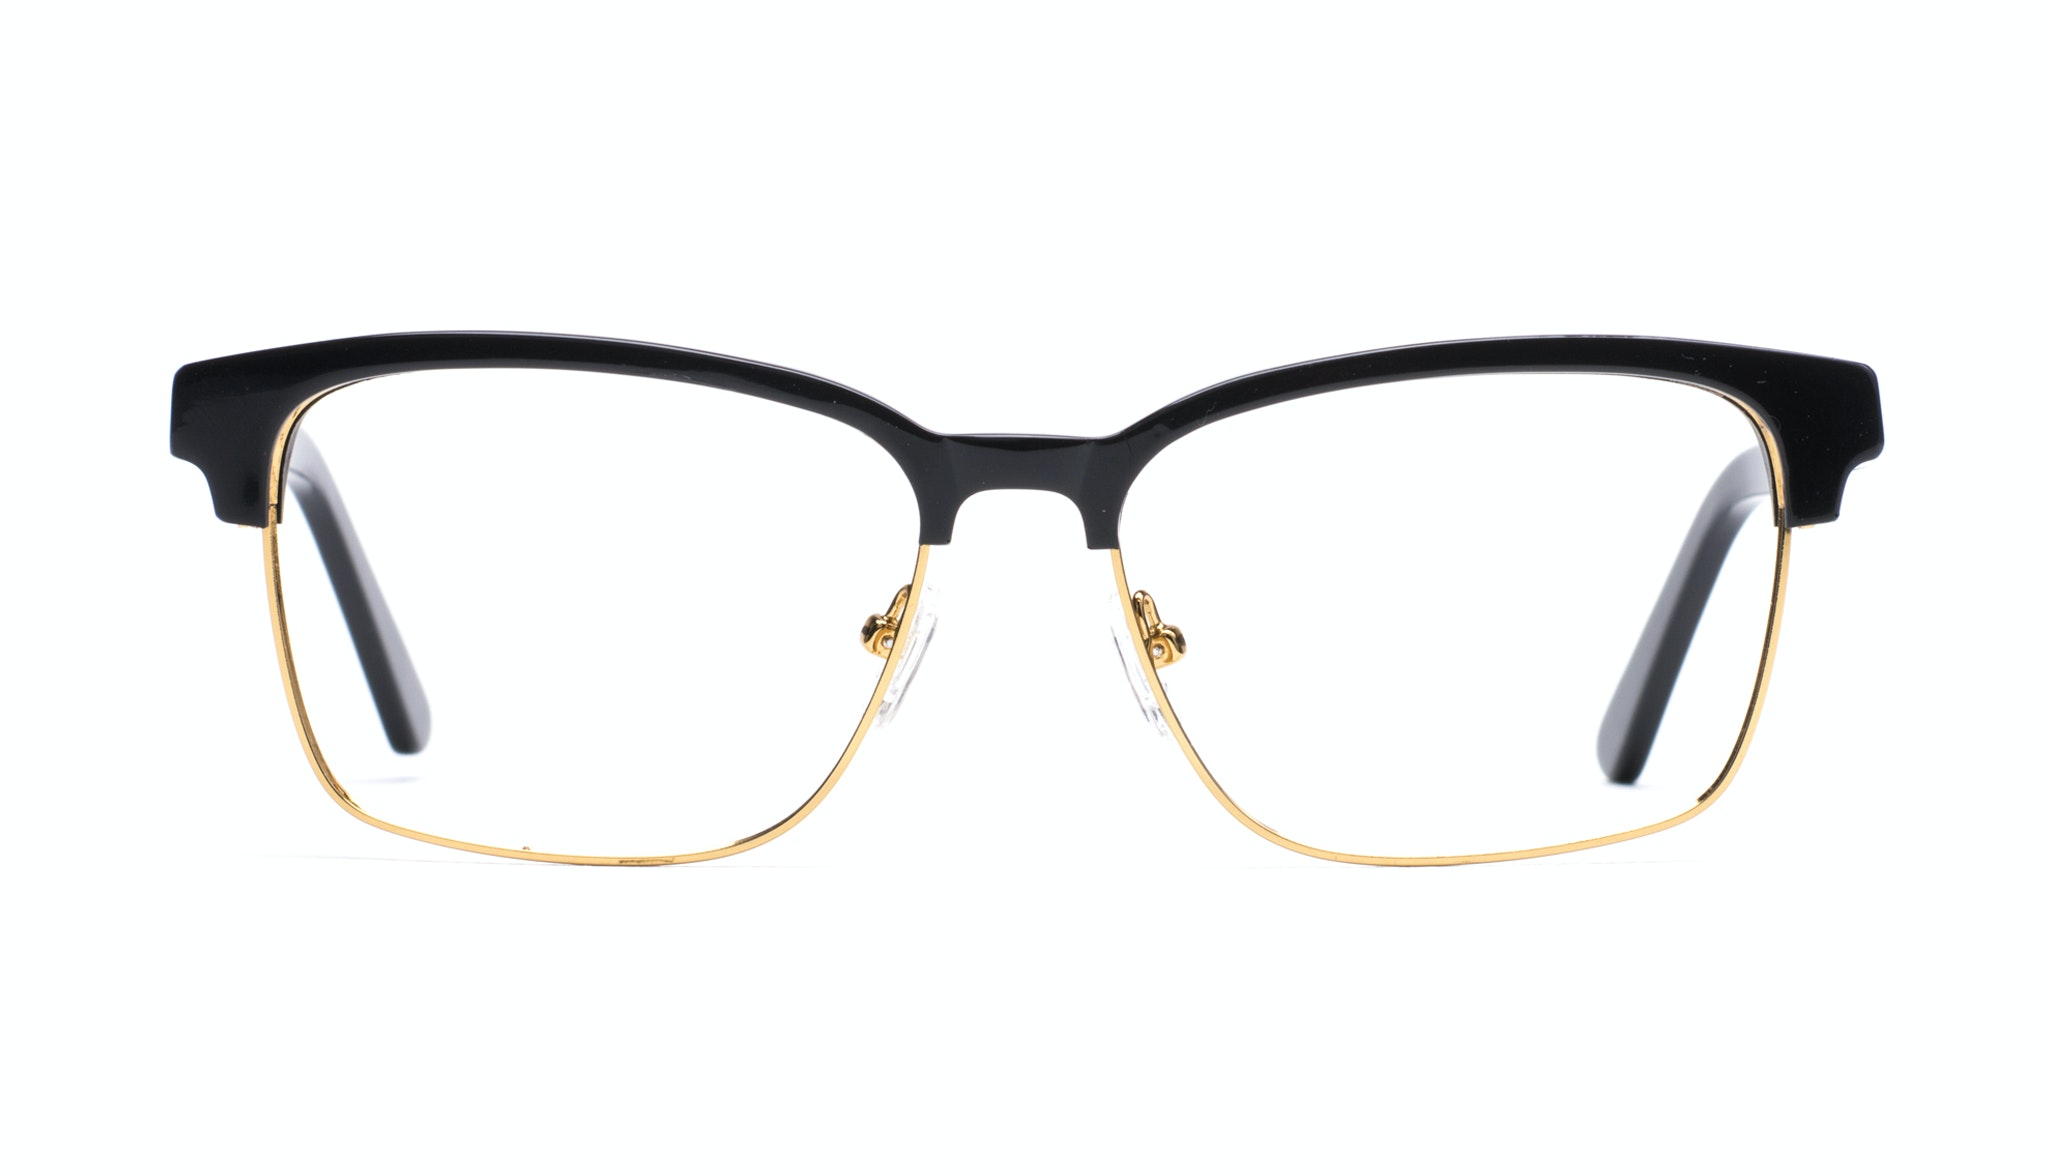 Affordable Fashion Glasses Rectangle Square Eyeglasses Men Gallery Black